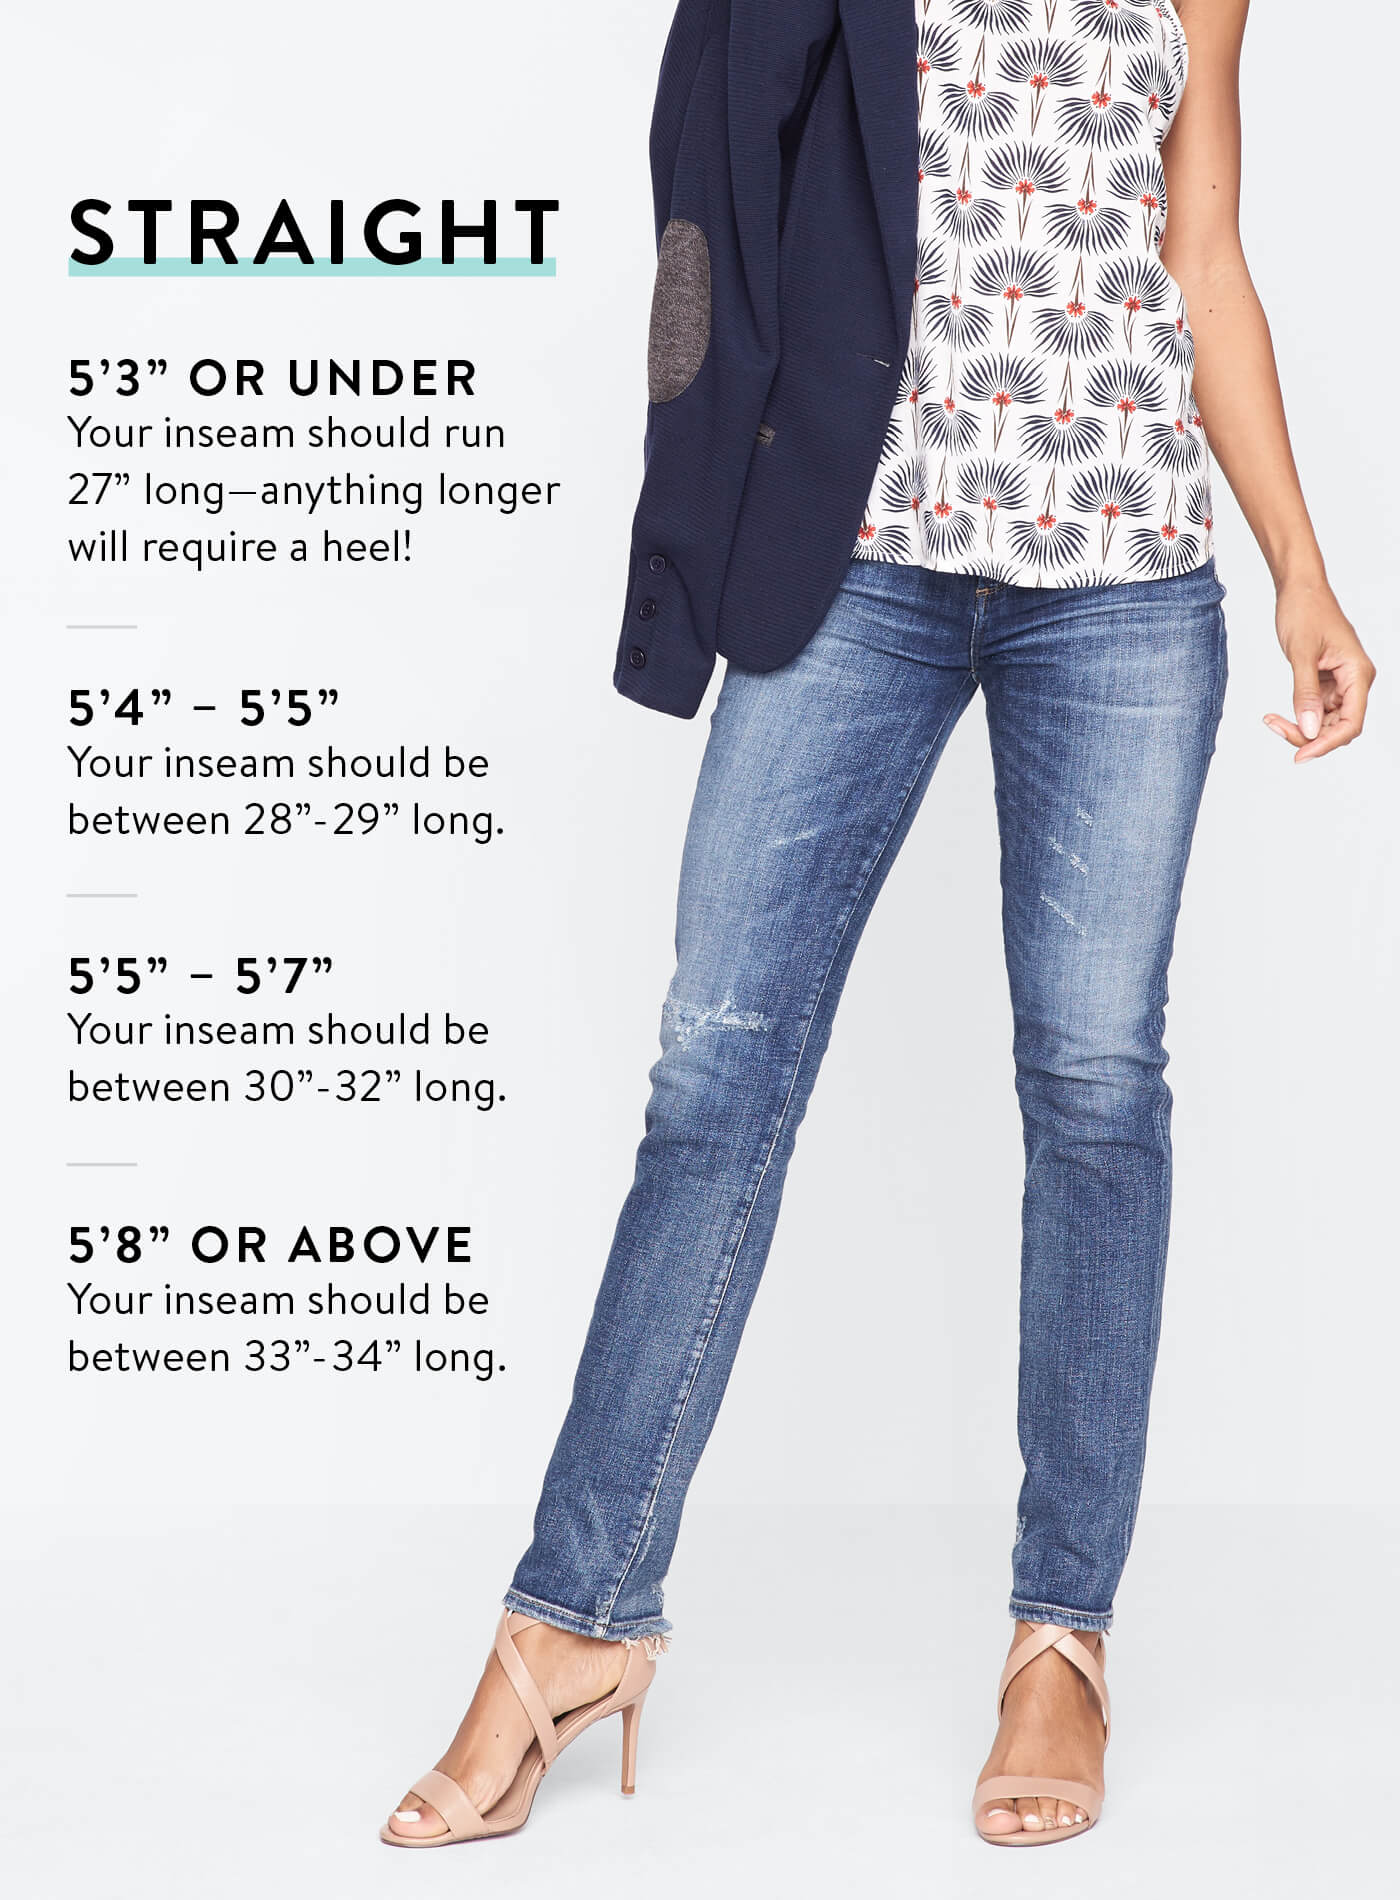 Skinny jeans 34 inch inseam